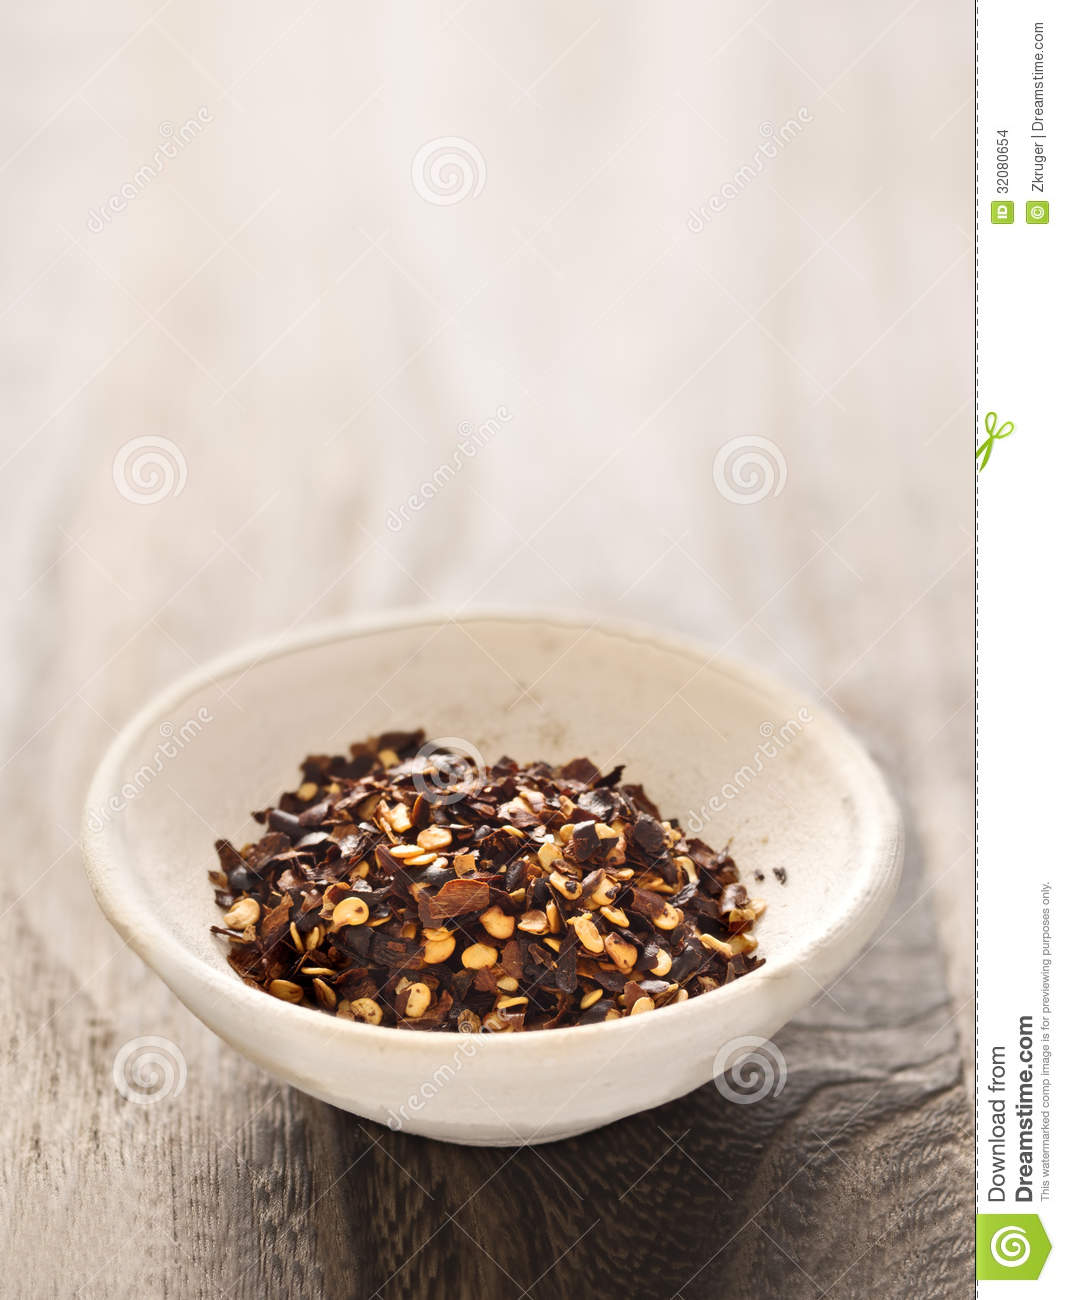 Dried red chili flakes stock images image 32080654 for Chili flakes